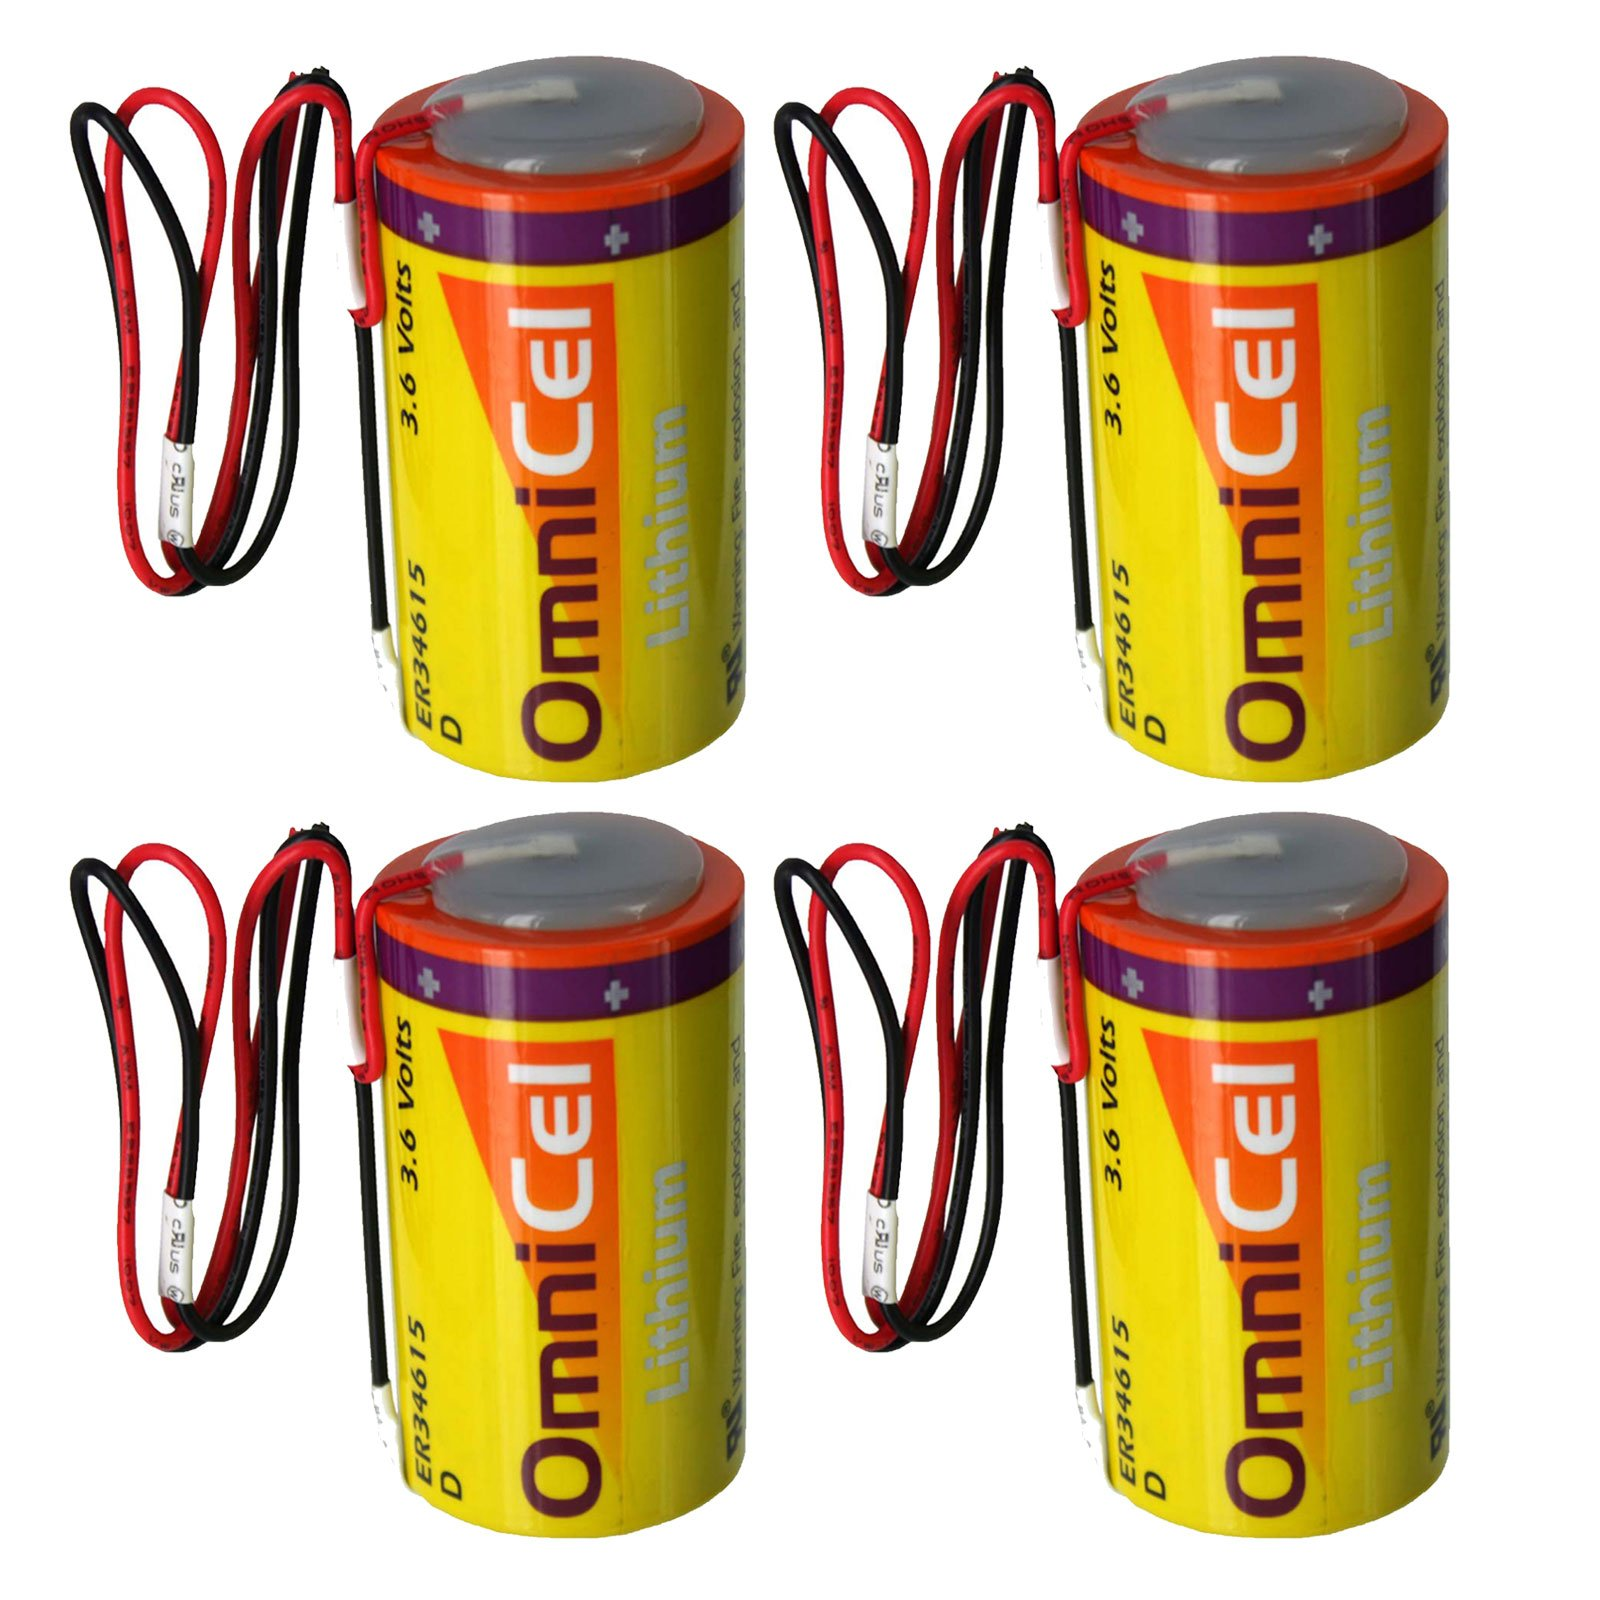 4x OmniCel ER34615 3.6V 19Ah Size D Lithium Battery with Wire Leads For Carbon Monoxide Detectors, Intrusion Sensors, Invisible Fencing, Emergency Backup, Data Collection, AMR Add-ons by Exell Battery